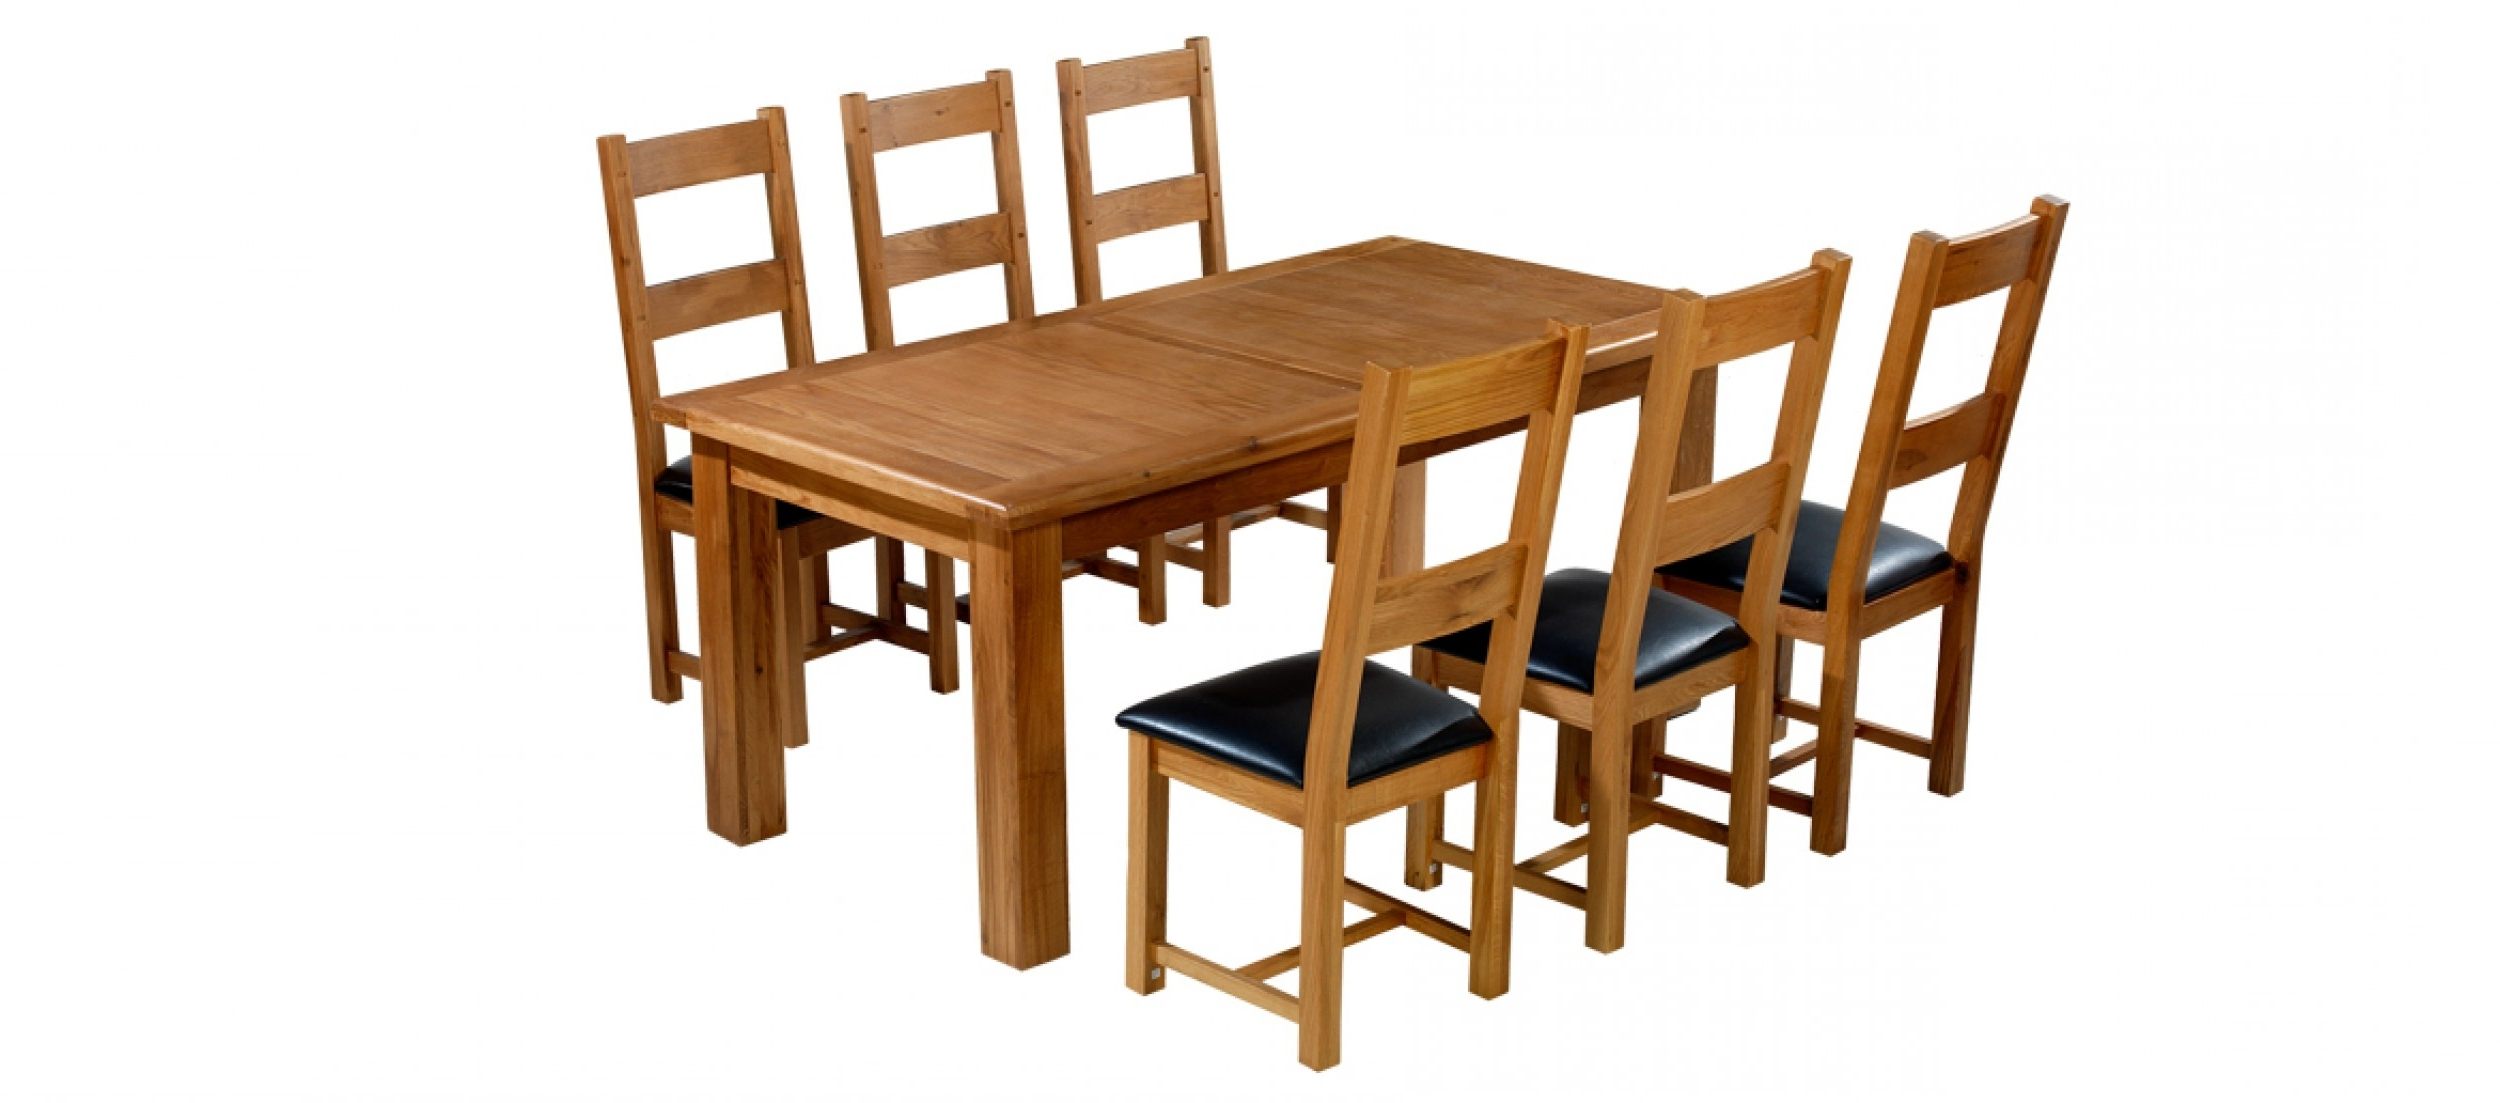 Quercus Throughout Extending Dining Tables And 6 Chairs (View 19 of 25)